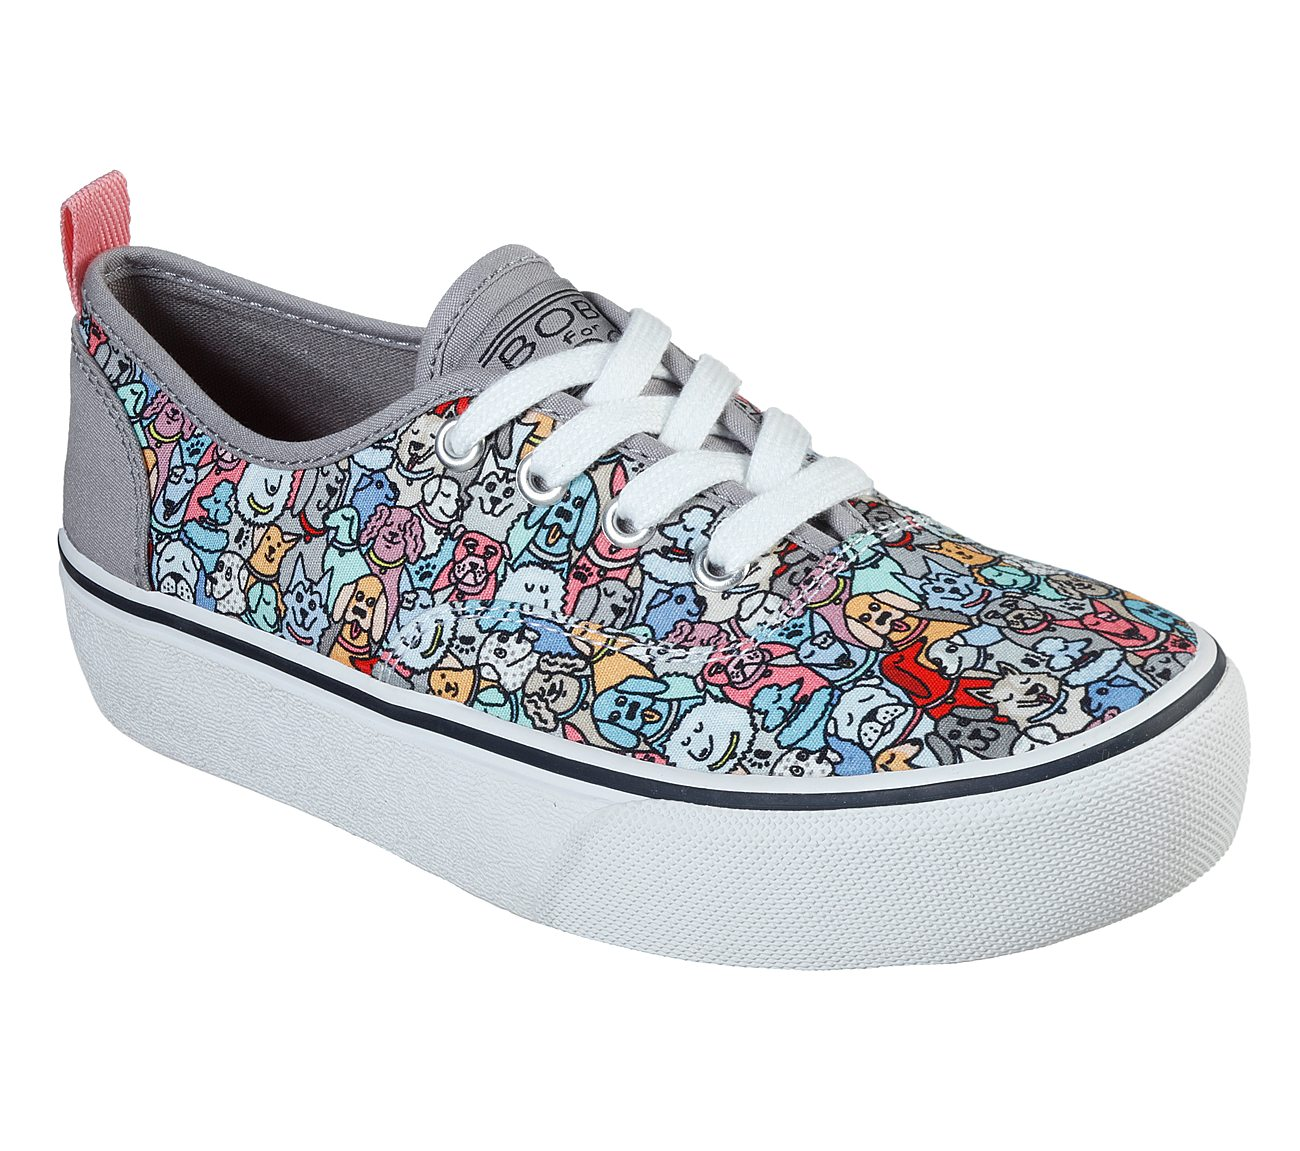 9aa0cafbe4c Buy SKECHERS BOBS Marley - Woof Posse BOBS Shoes only  52.00